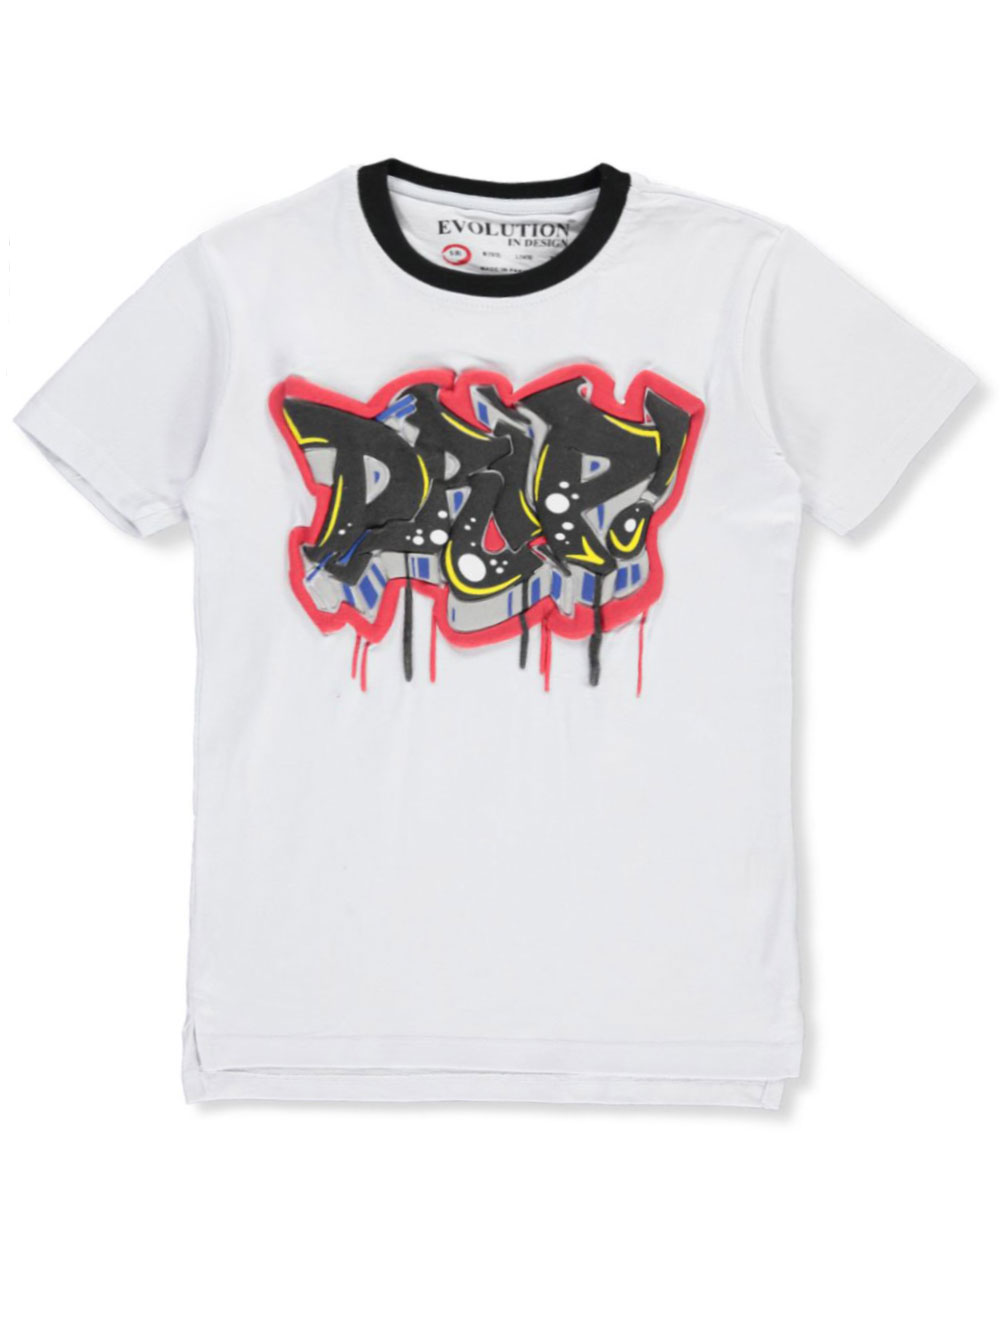 Boys Black and White T-Shirts